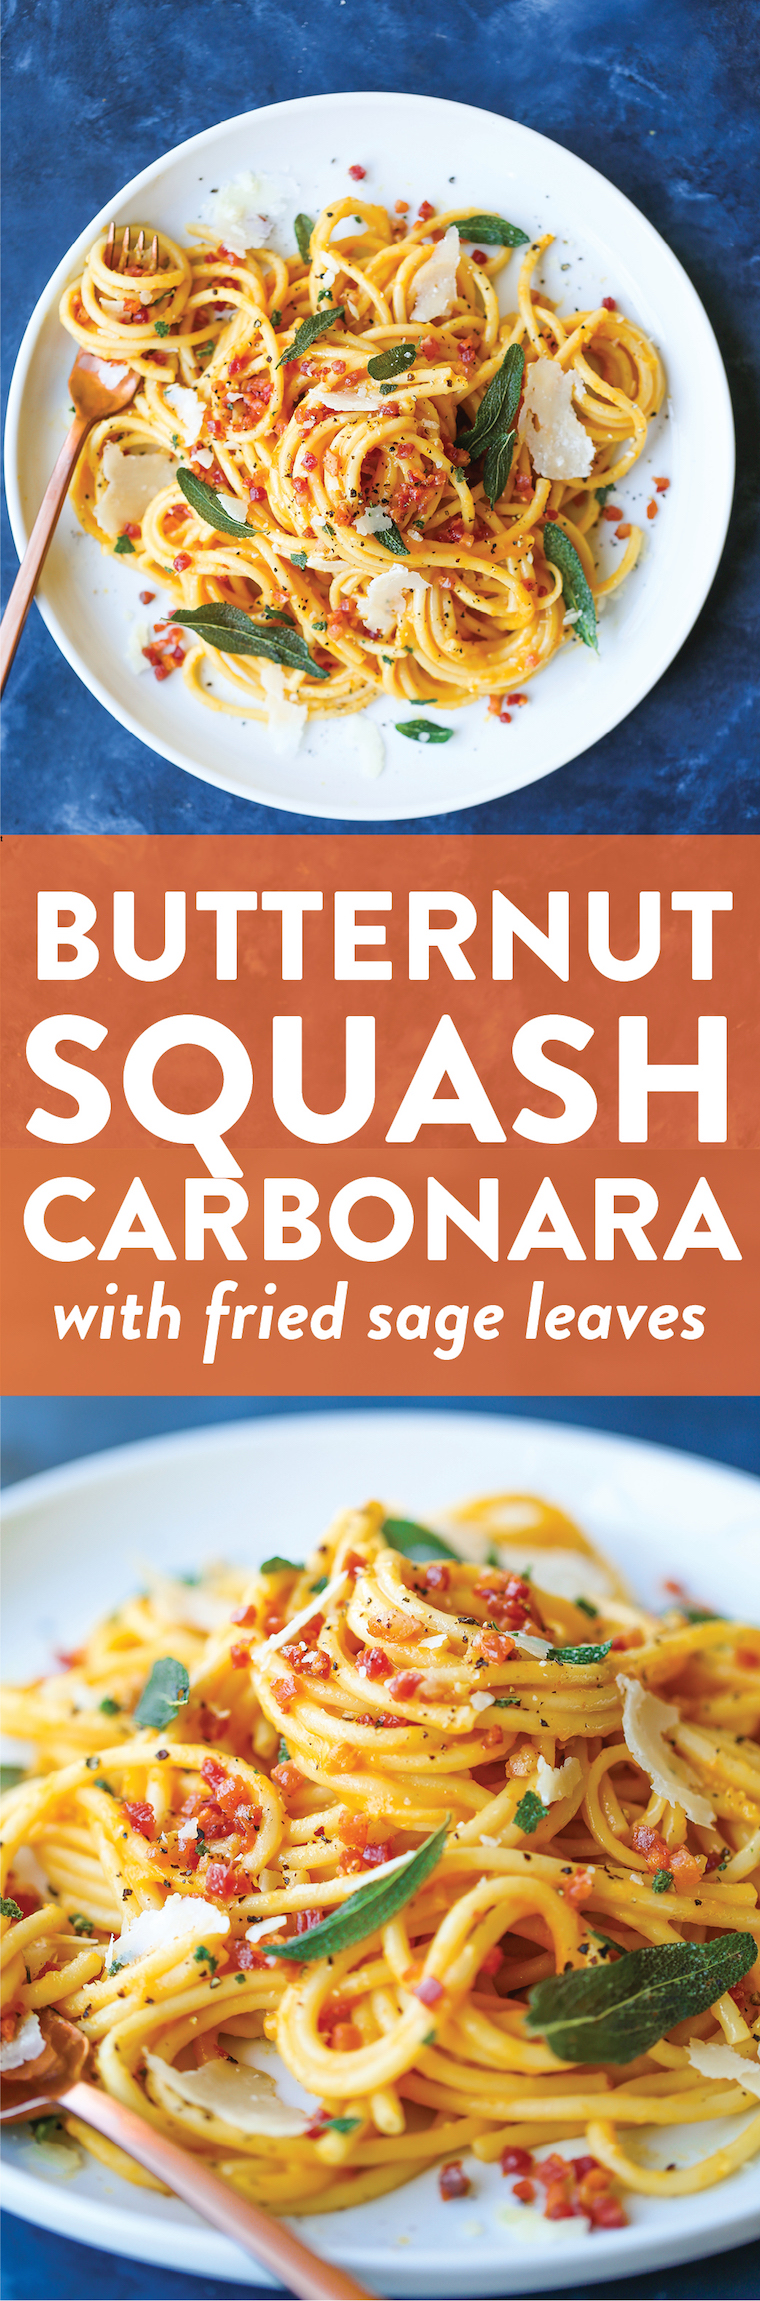 Butternut Squash Carbonara - If you love carbonara, you will love this! It is amazingly creamy and loaded with crispy pancetta and fried sage leaves!